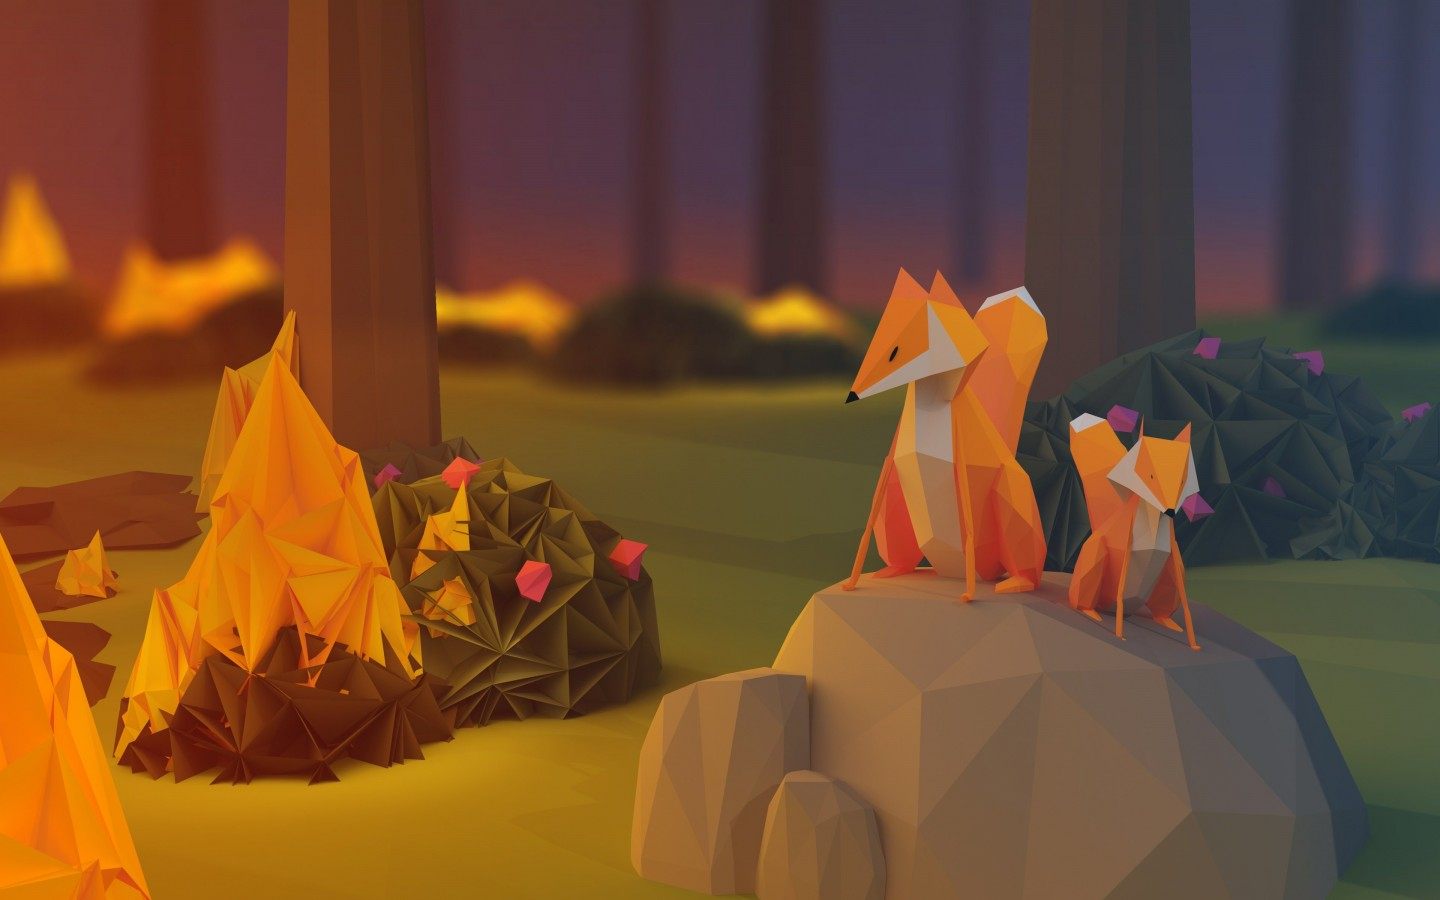 Low Poly Foxes Wallpaper for Desktop 1440x900